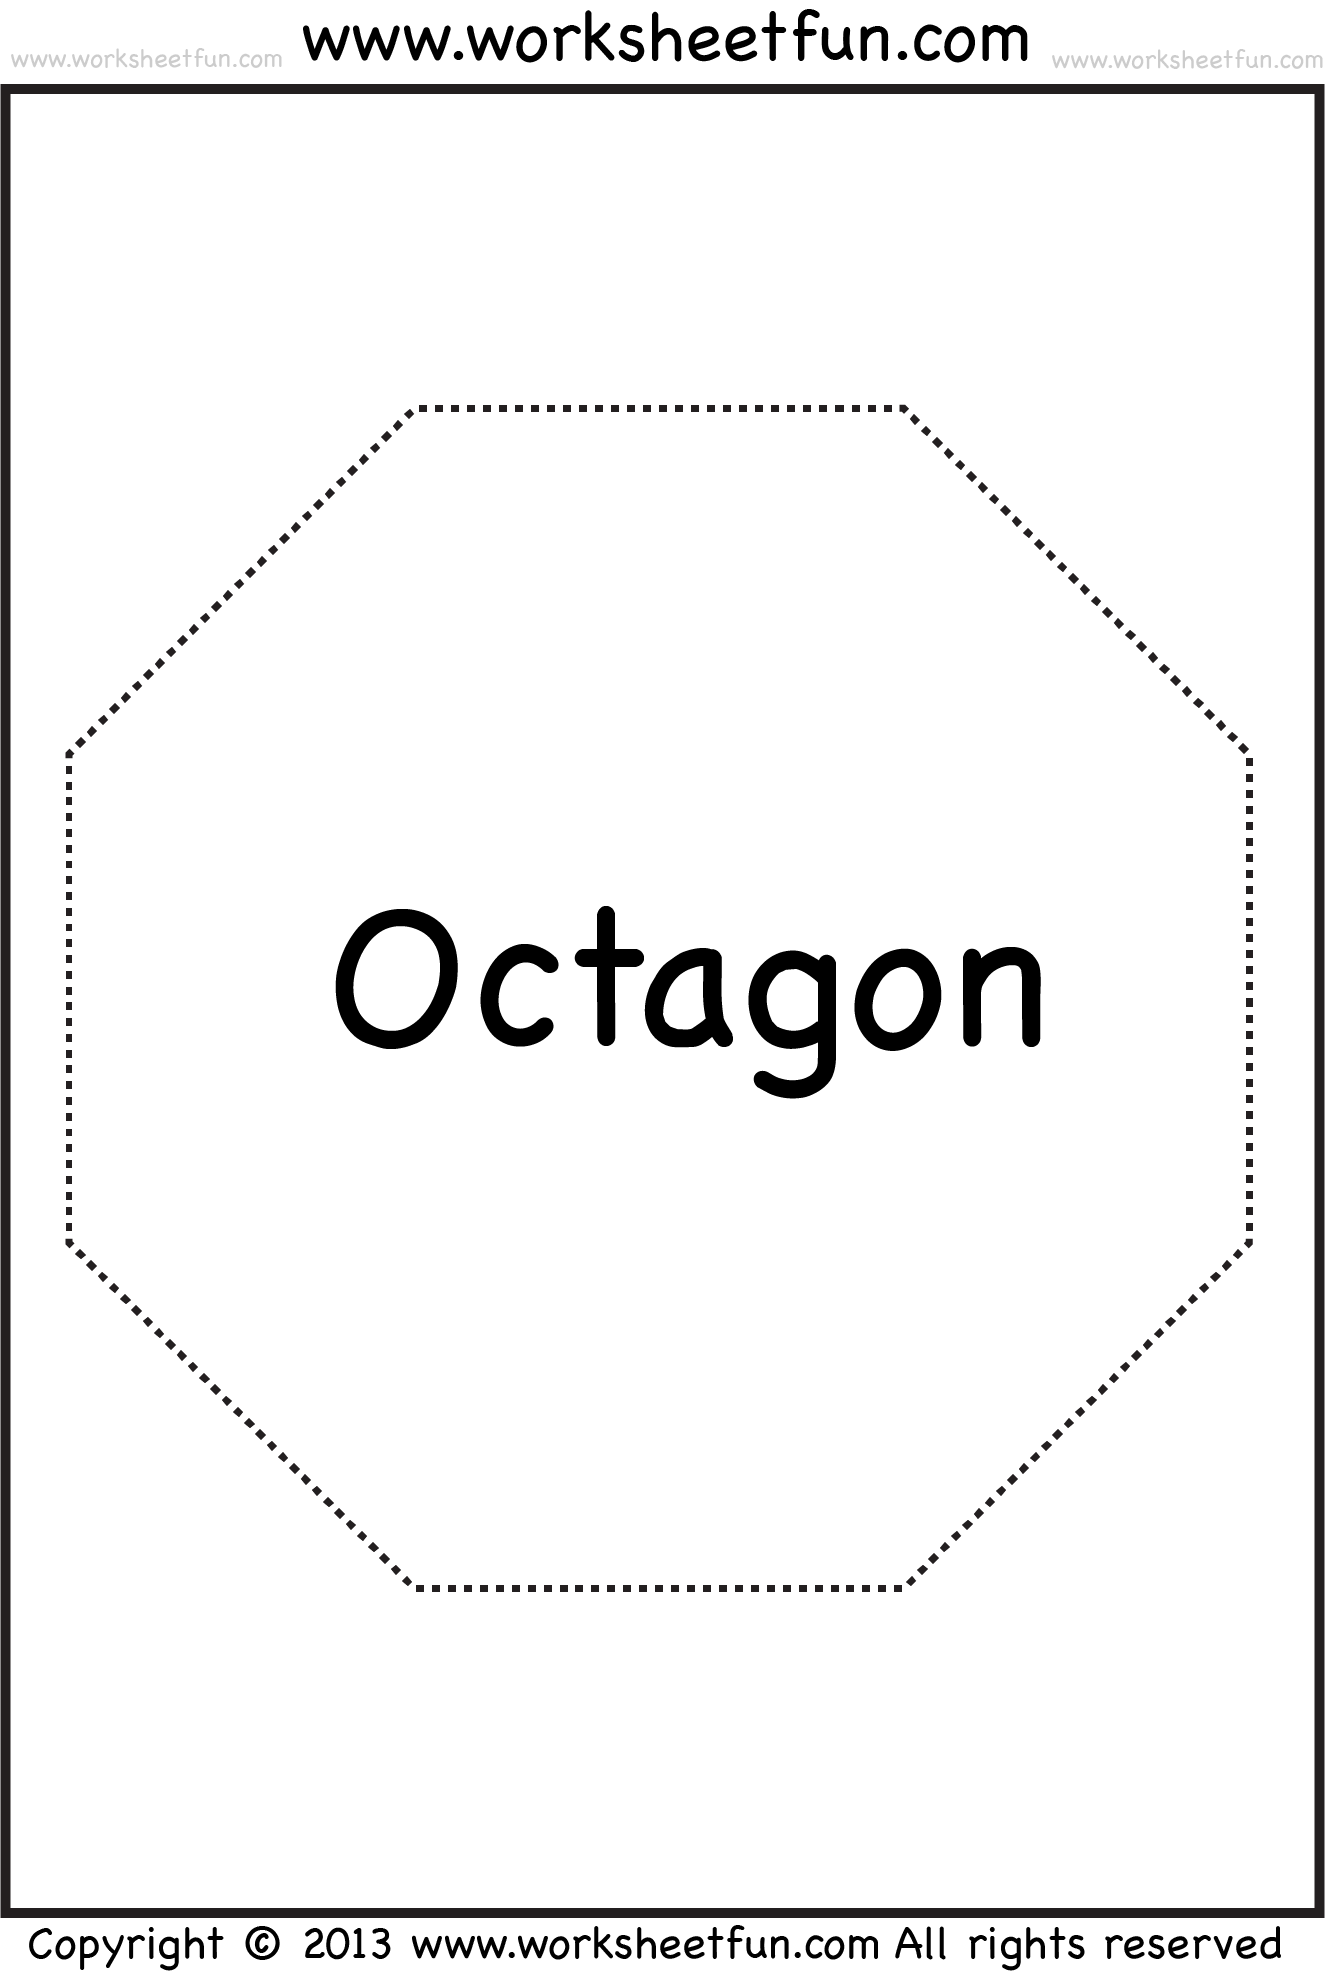 Shapes Pentagon Hexagon Heptagon Octagon Nonagon